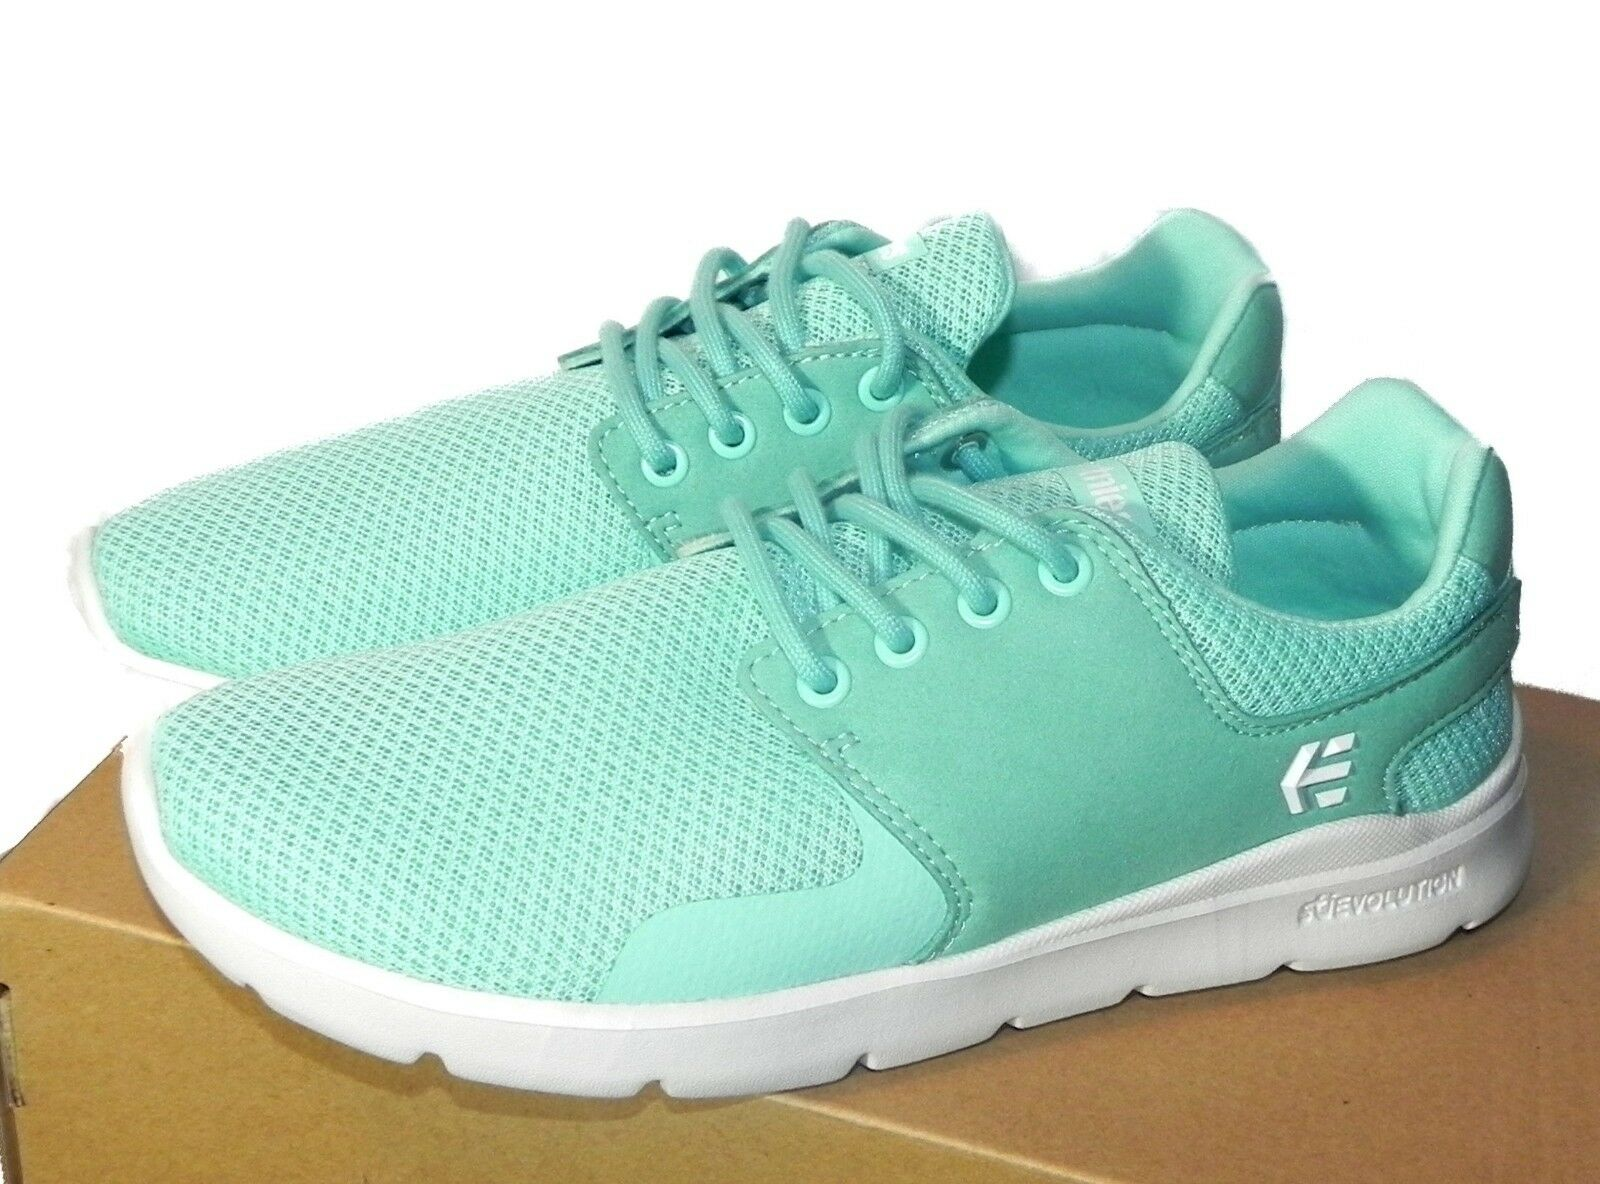 Etnies Womens Scout XT Sneaker Light bluee Size 6 Brand New With Box